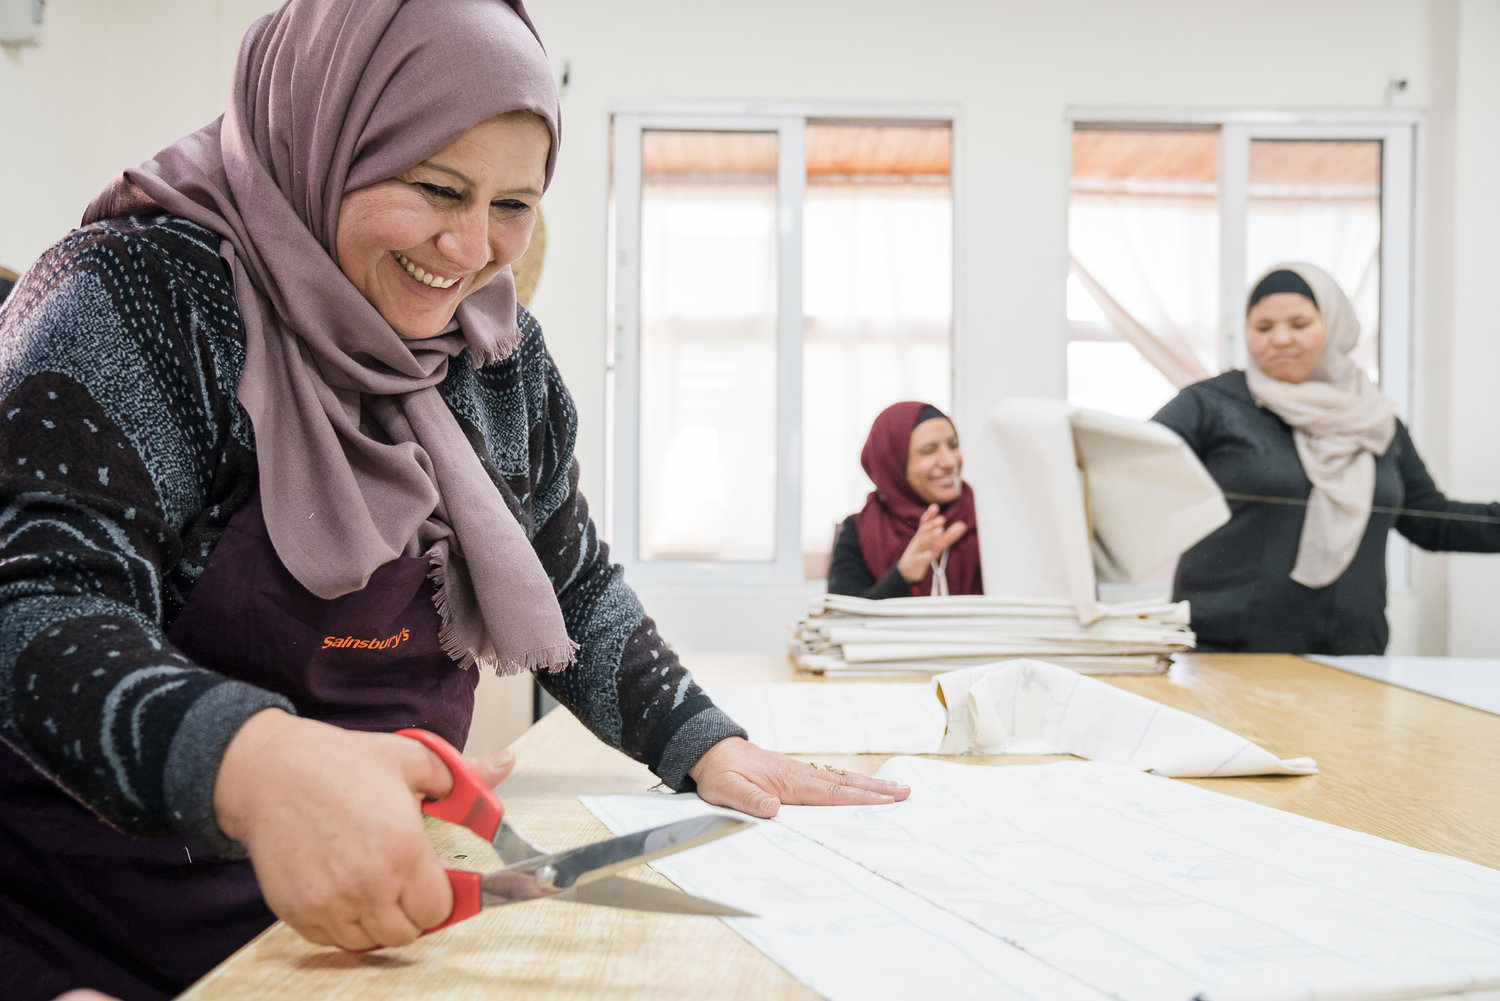 Refugee women working at the Jordan River Foundation/IKEA production facility site – Al Karma Center, Amman, Jordan. Photo: Tent Foundation/Johannes Arlt.